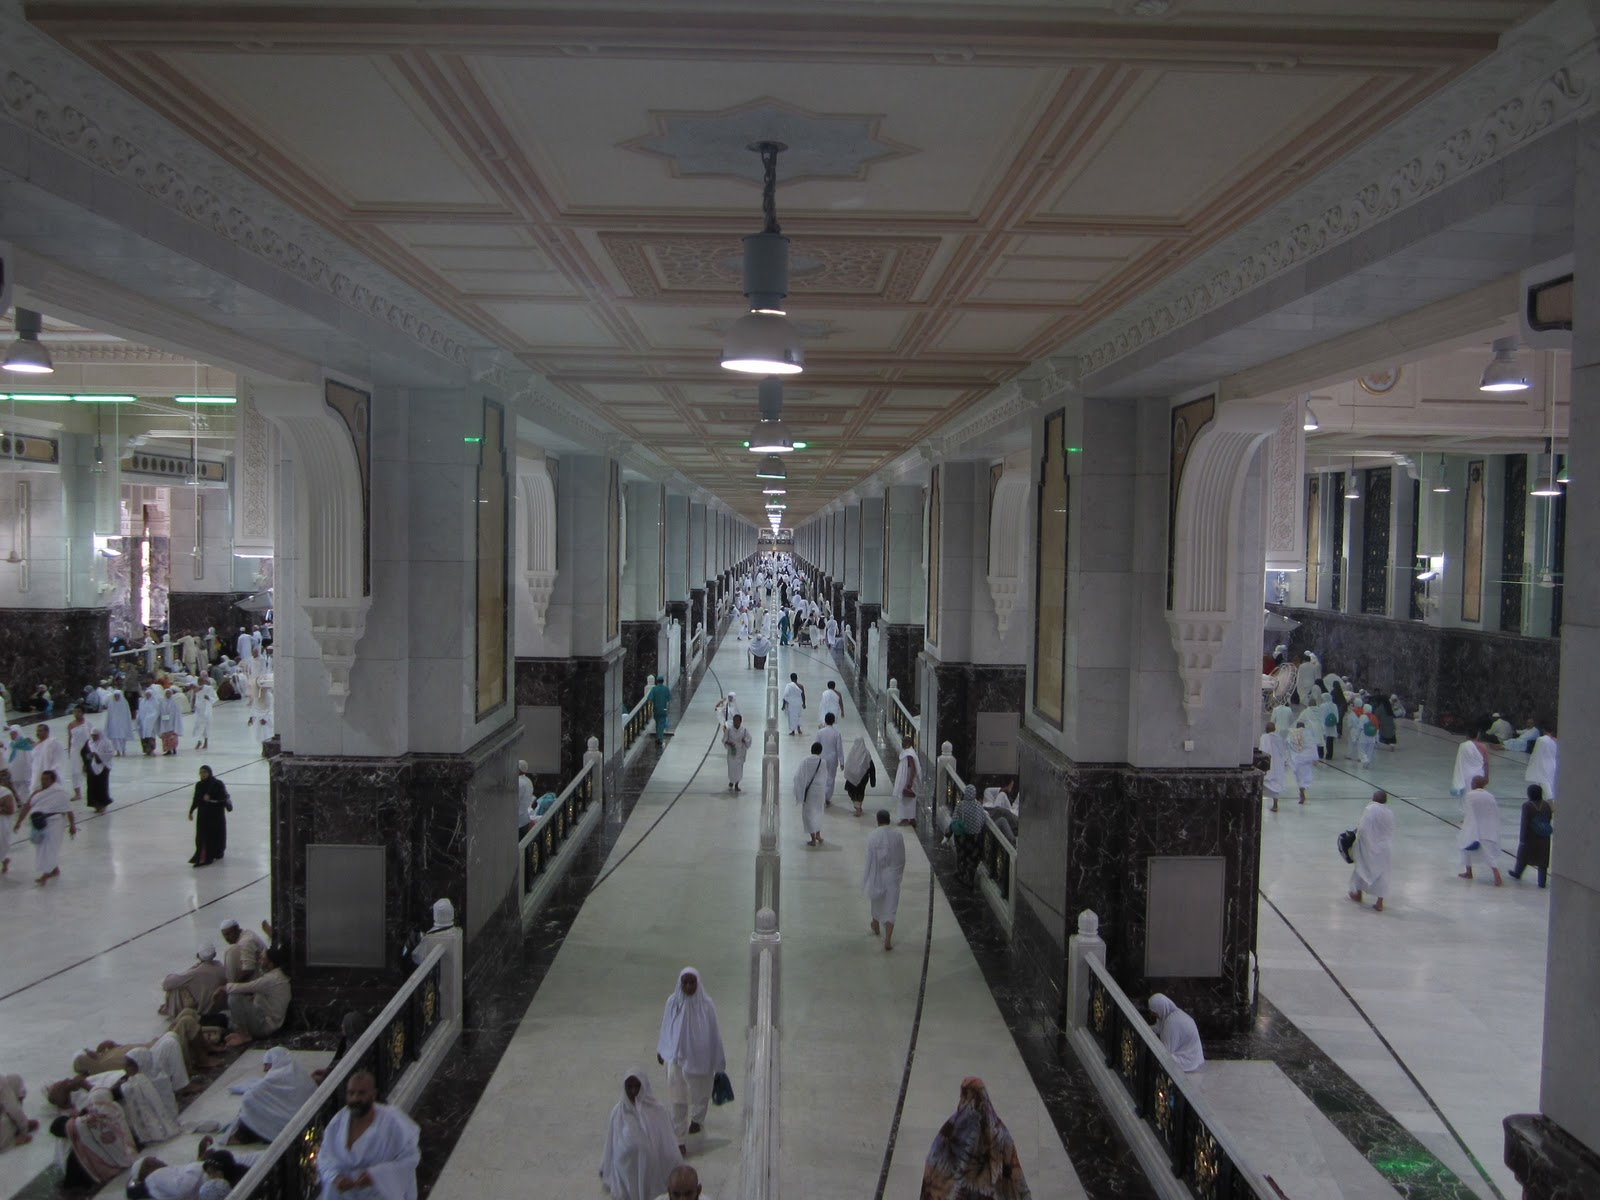 Walkway between Safa and Marwa - image from Masjid Al Haram Blog